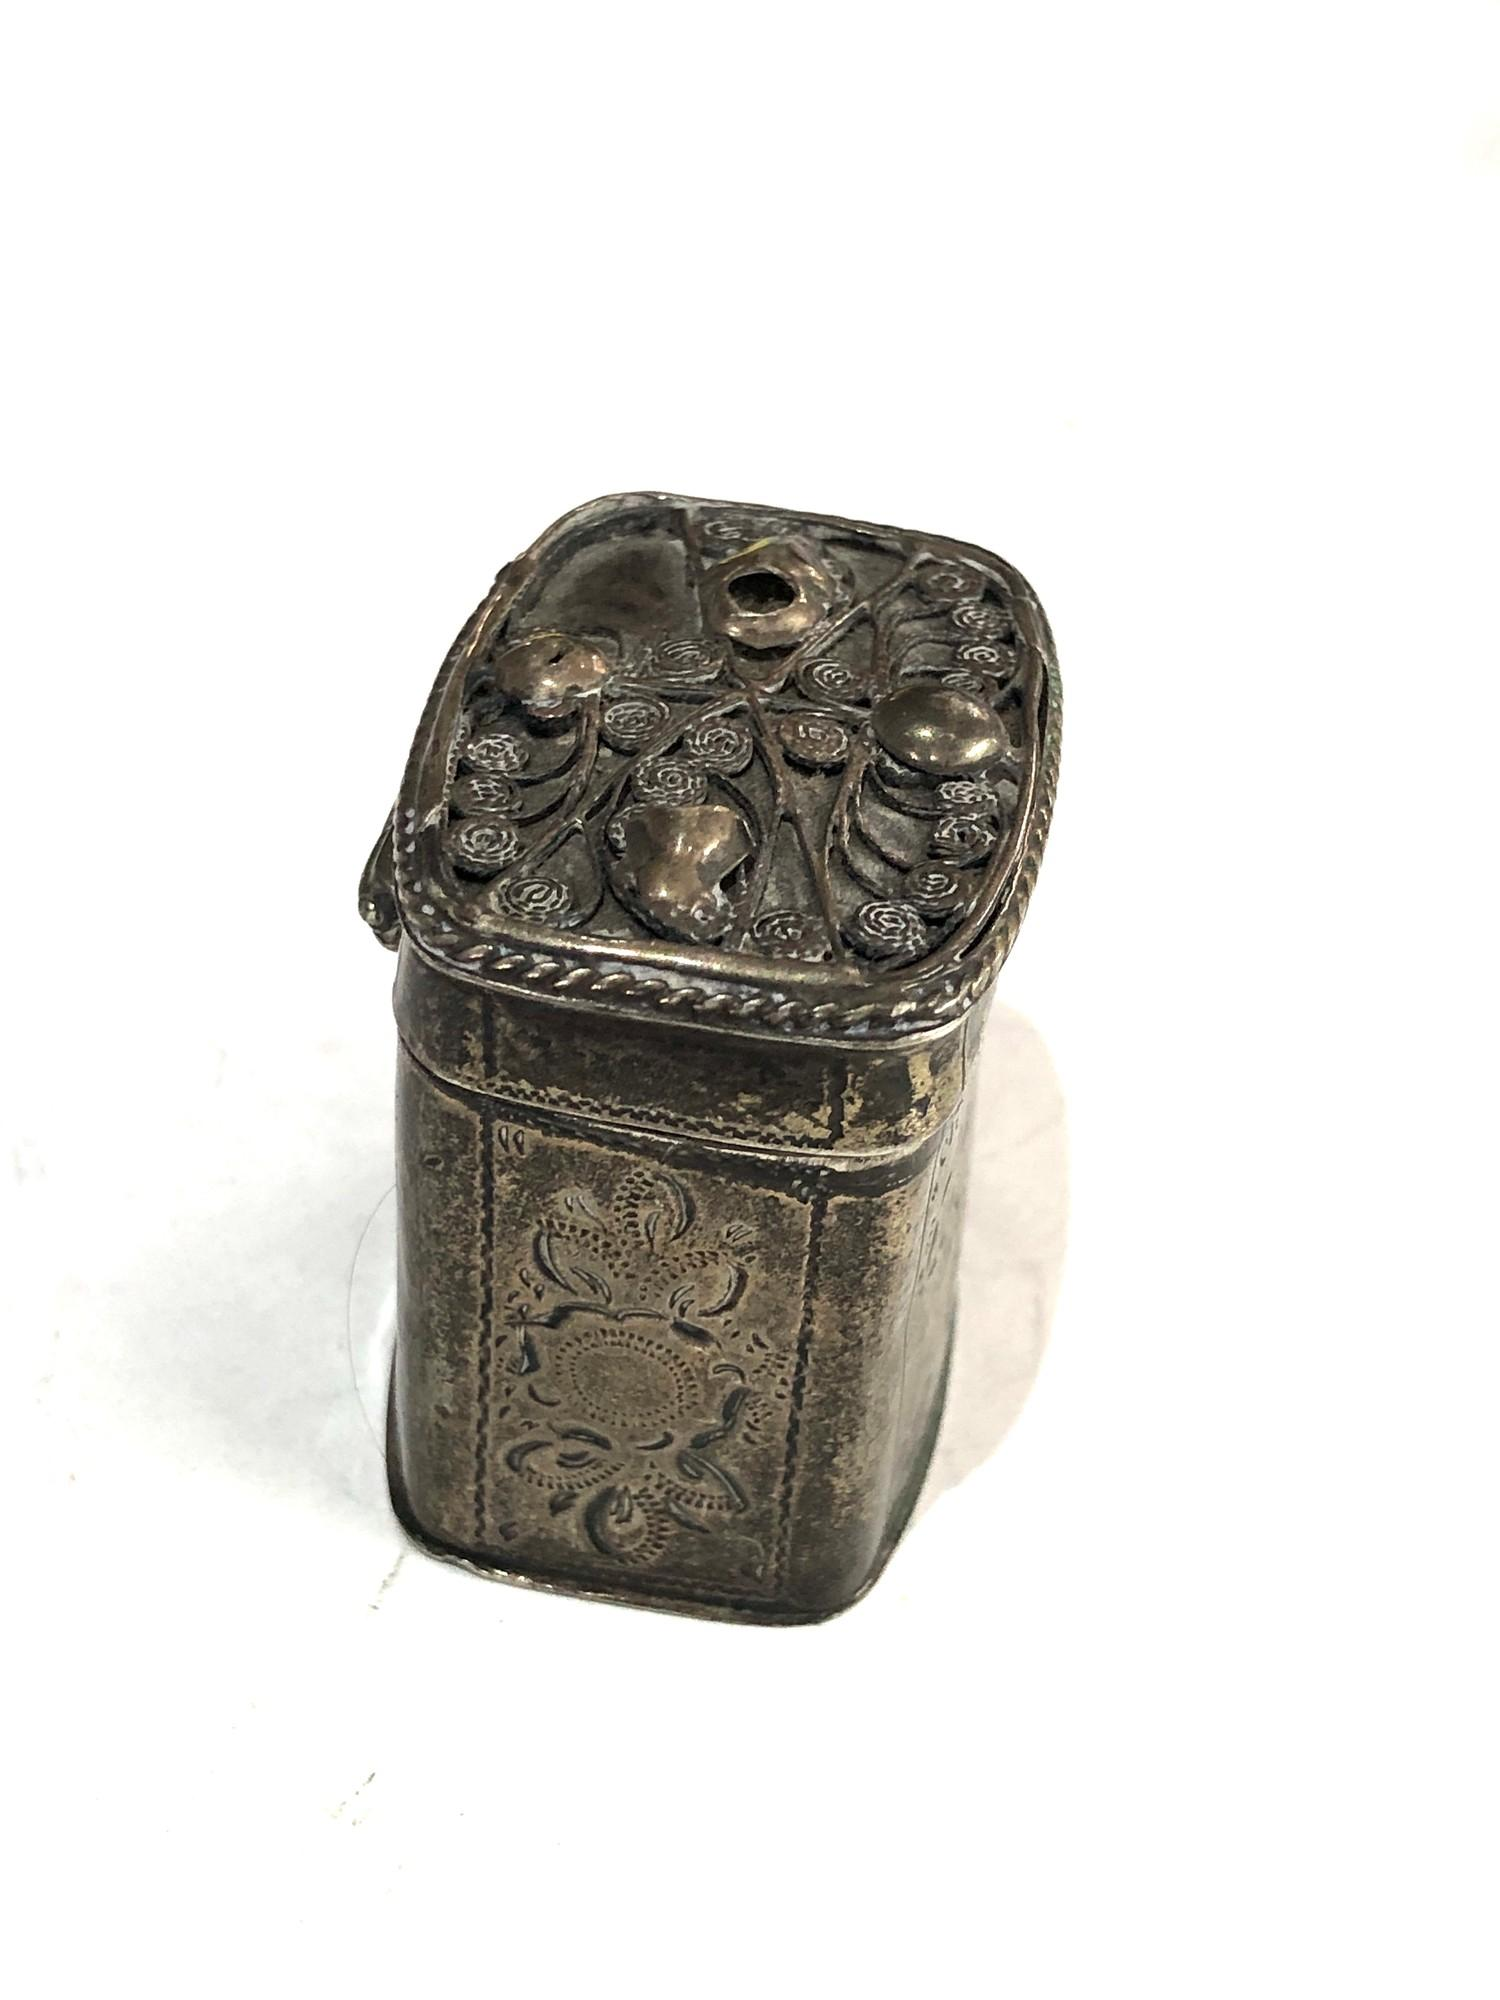 Antique Dutch silver peppermint box measures approx 4cm high and 4cm by 3cm age related wear dent - Image 2 of 6